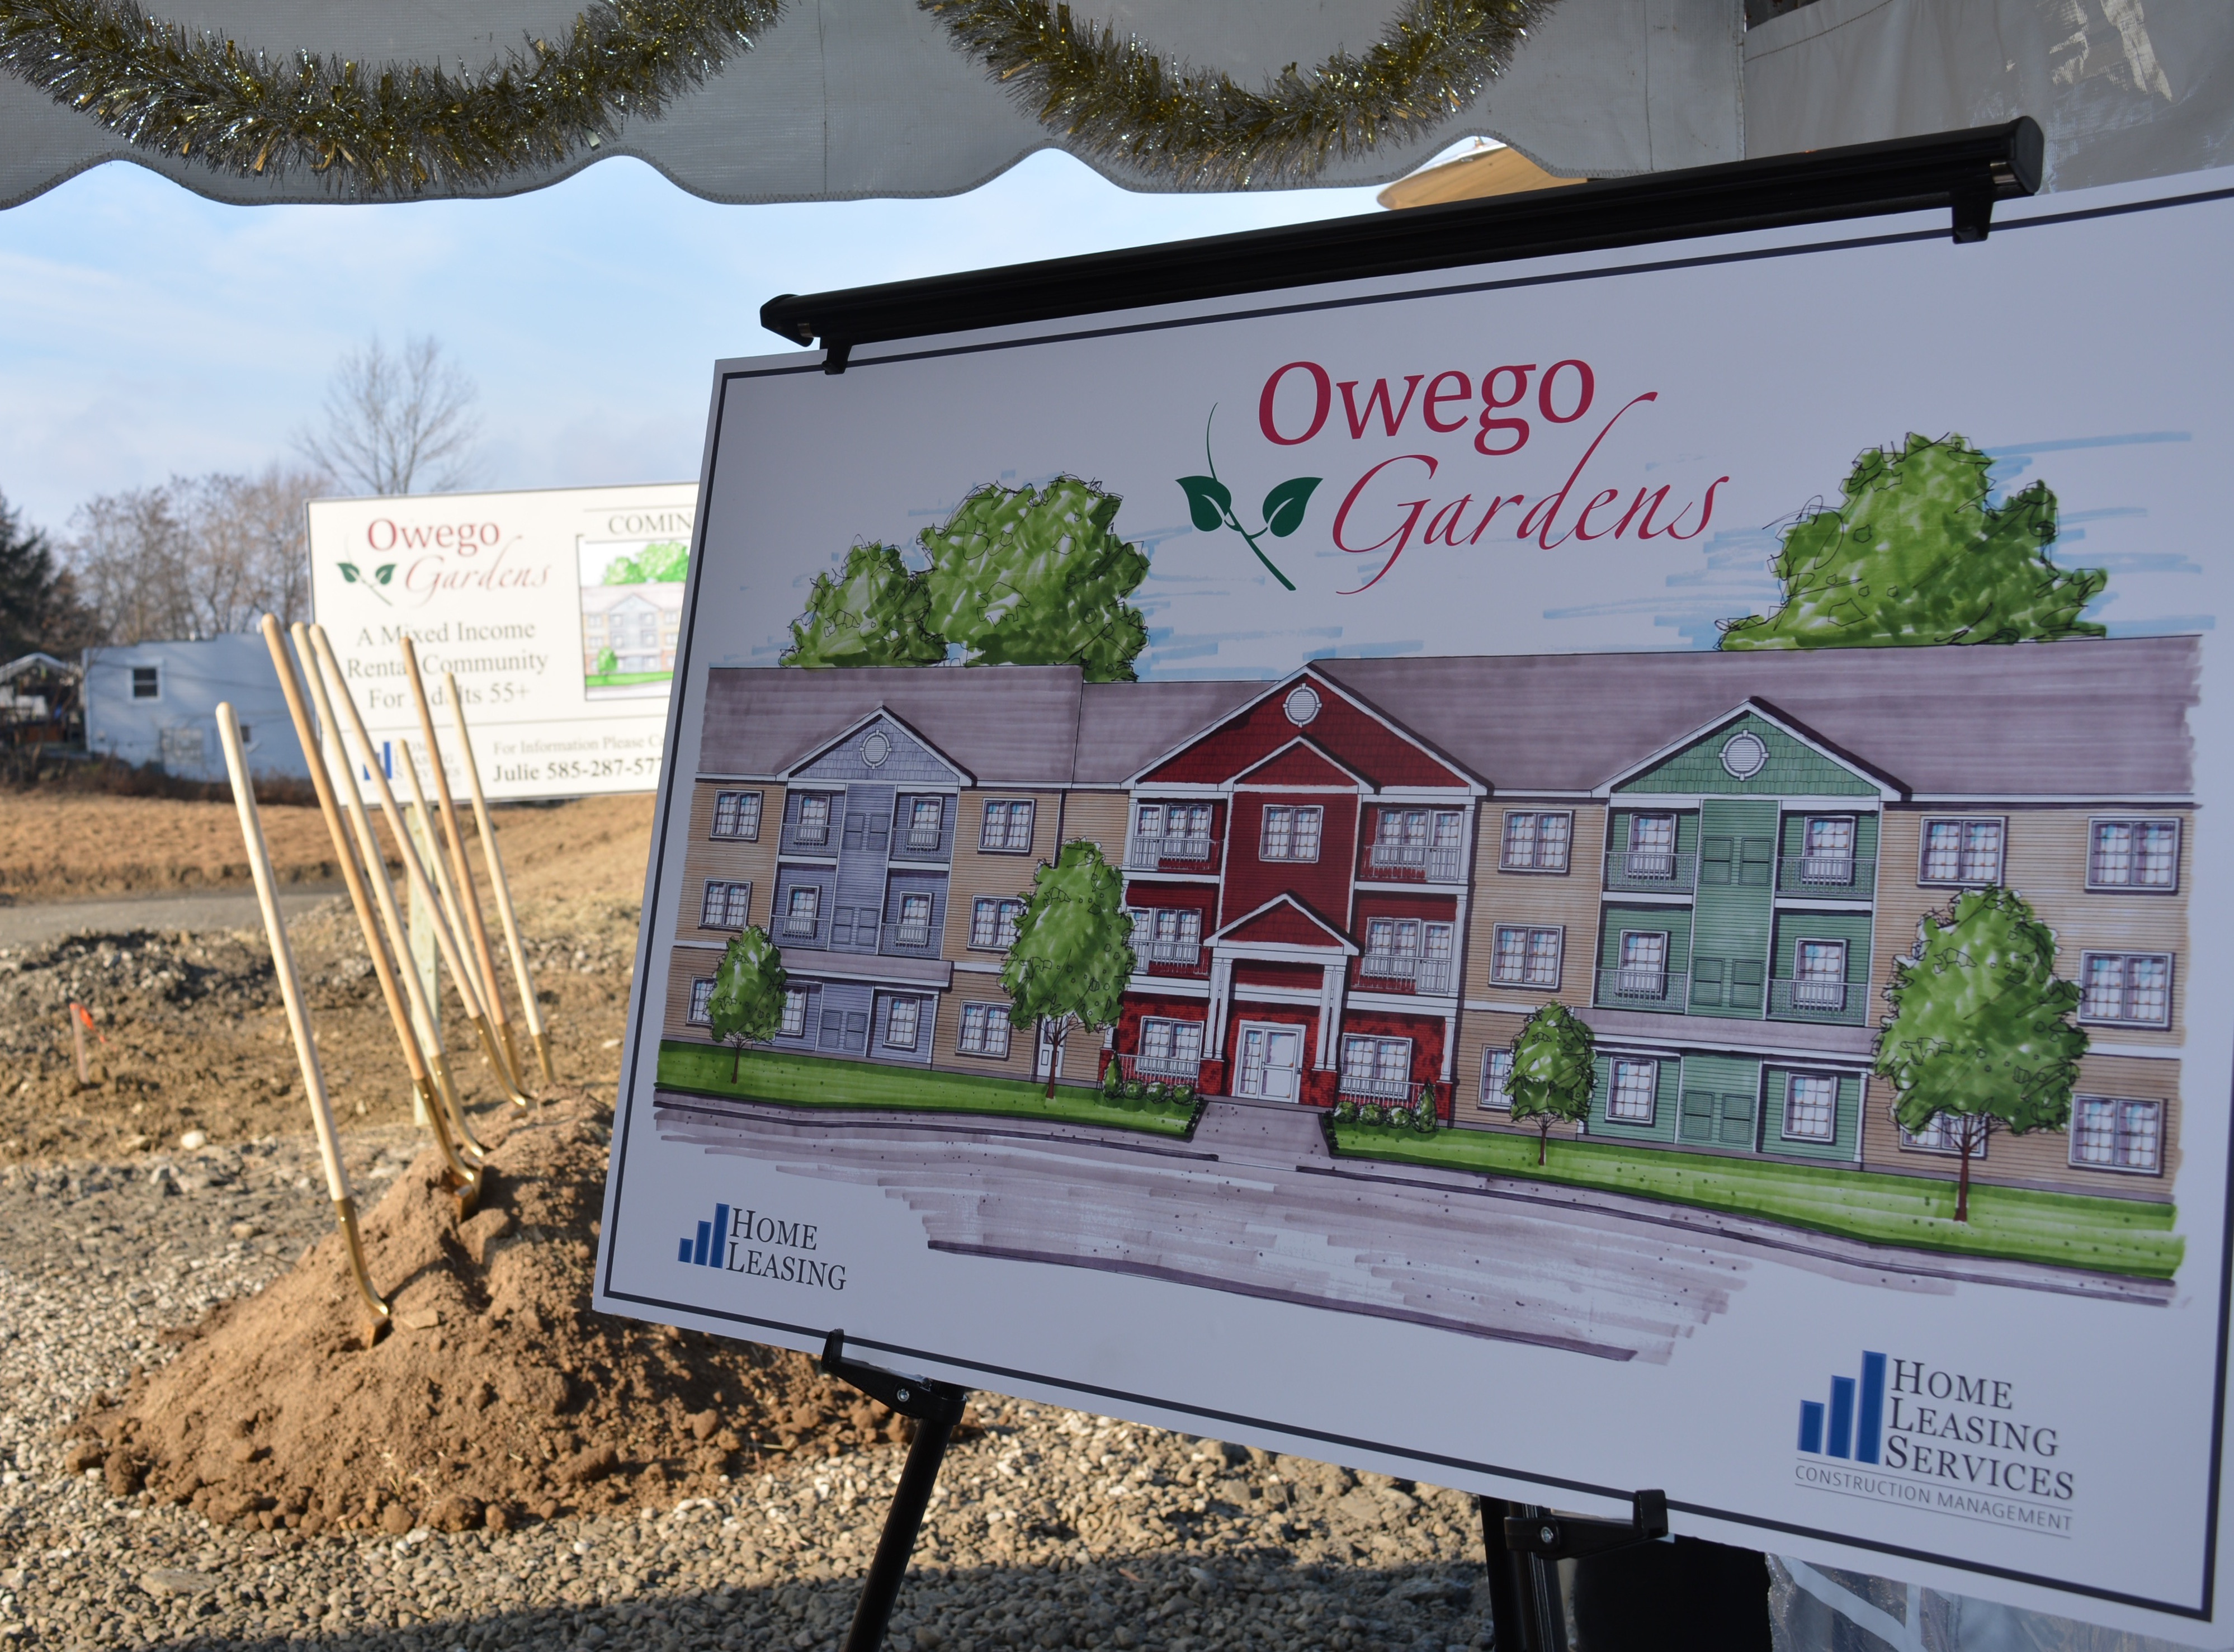 Storm recovery continues with groundbreaking for Owego Gardens